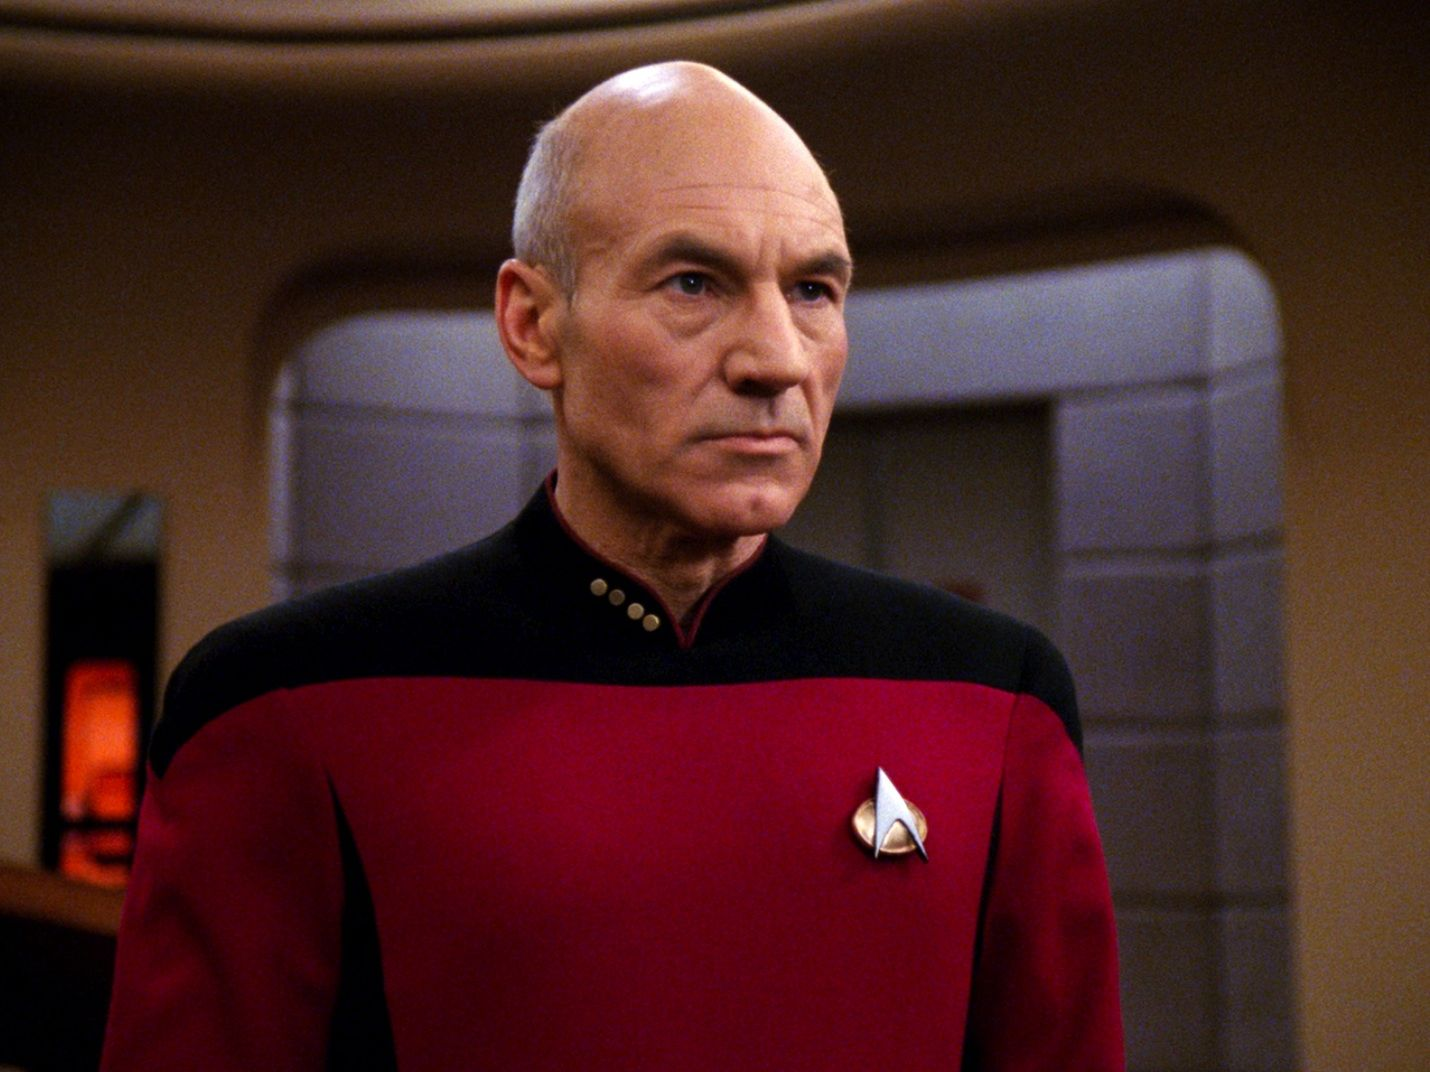 jean luc picard looking awesome